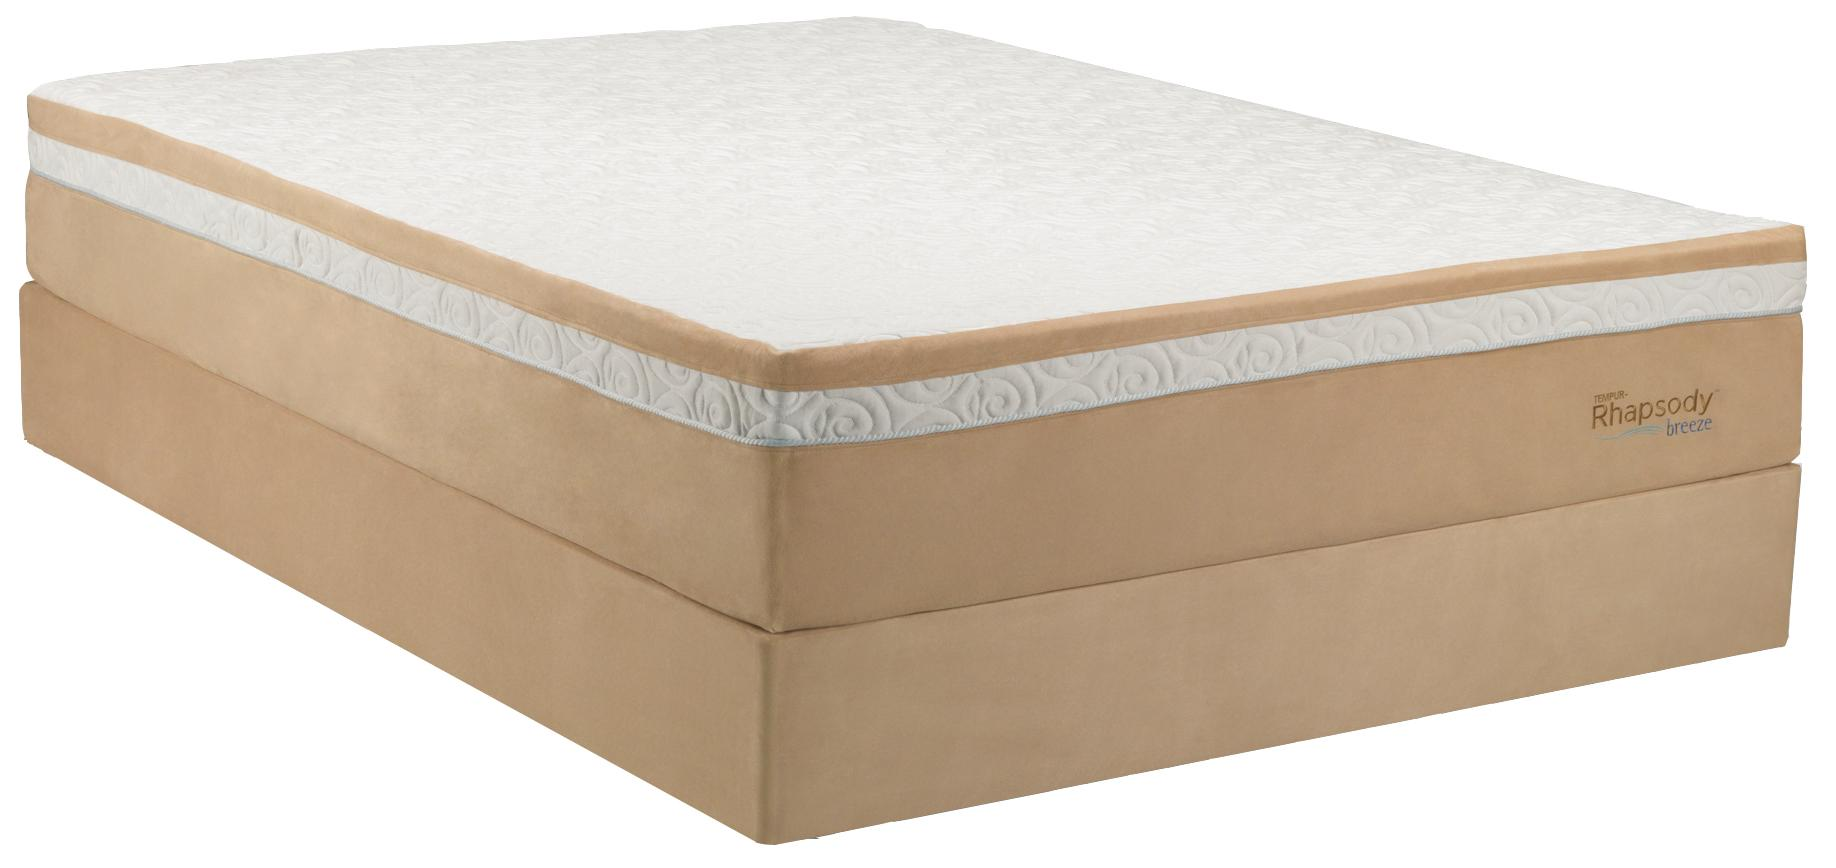 Tempur-Pedic® TEMPUR-Contour™ Rhapsody Breeze Queen Medium Firm Mattress, HP Set - Item Number: 10104150+20520150